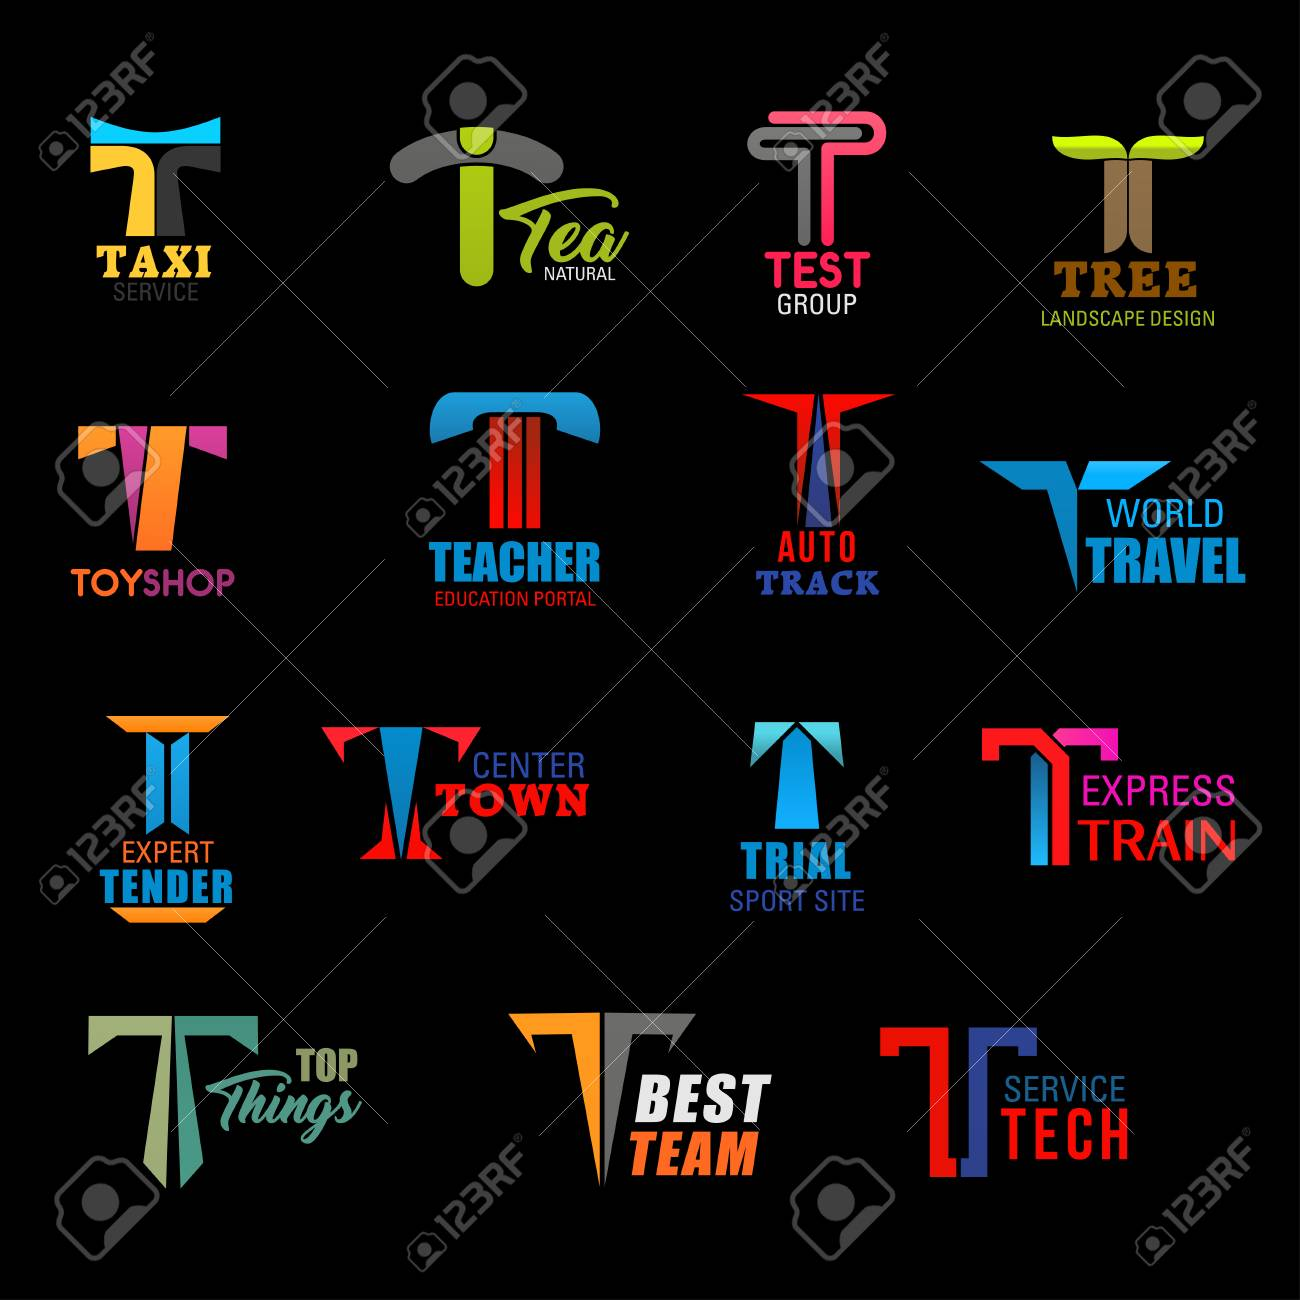 Letter T icons of taxi service, landscape design company and education portal. Vector T signs of travel agency, express train transportation, sport team od technology and toy shop - 118168451